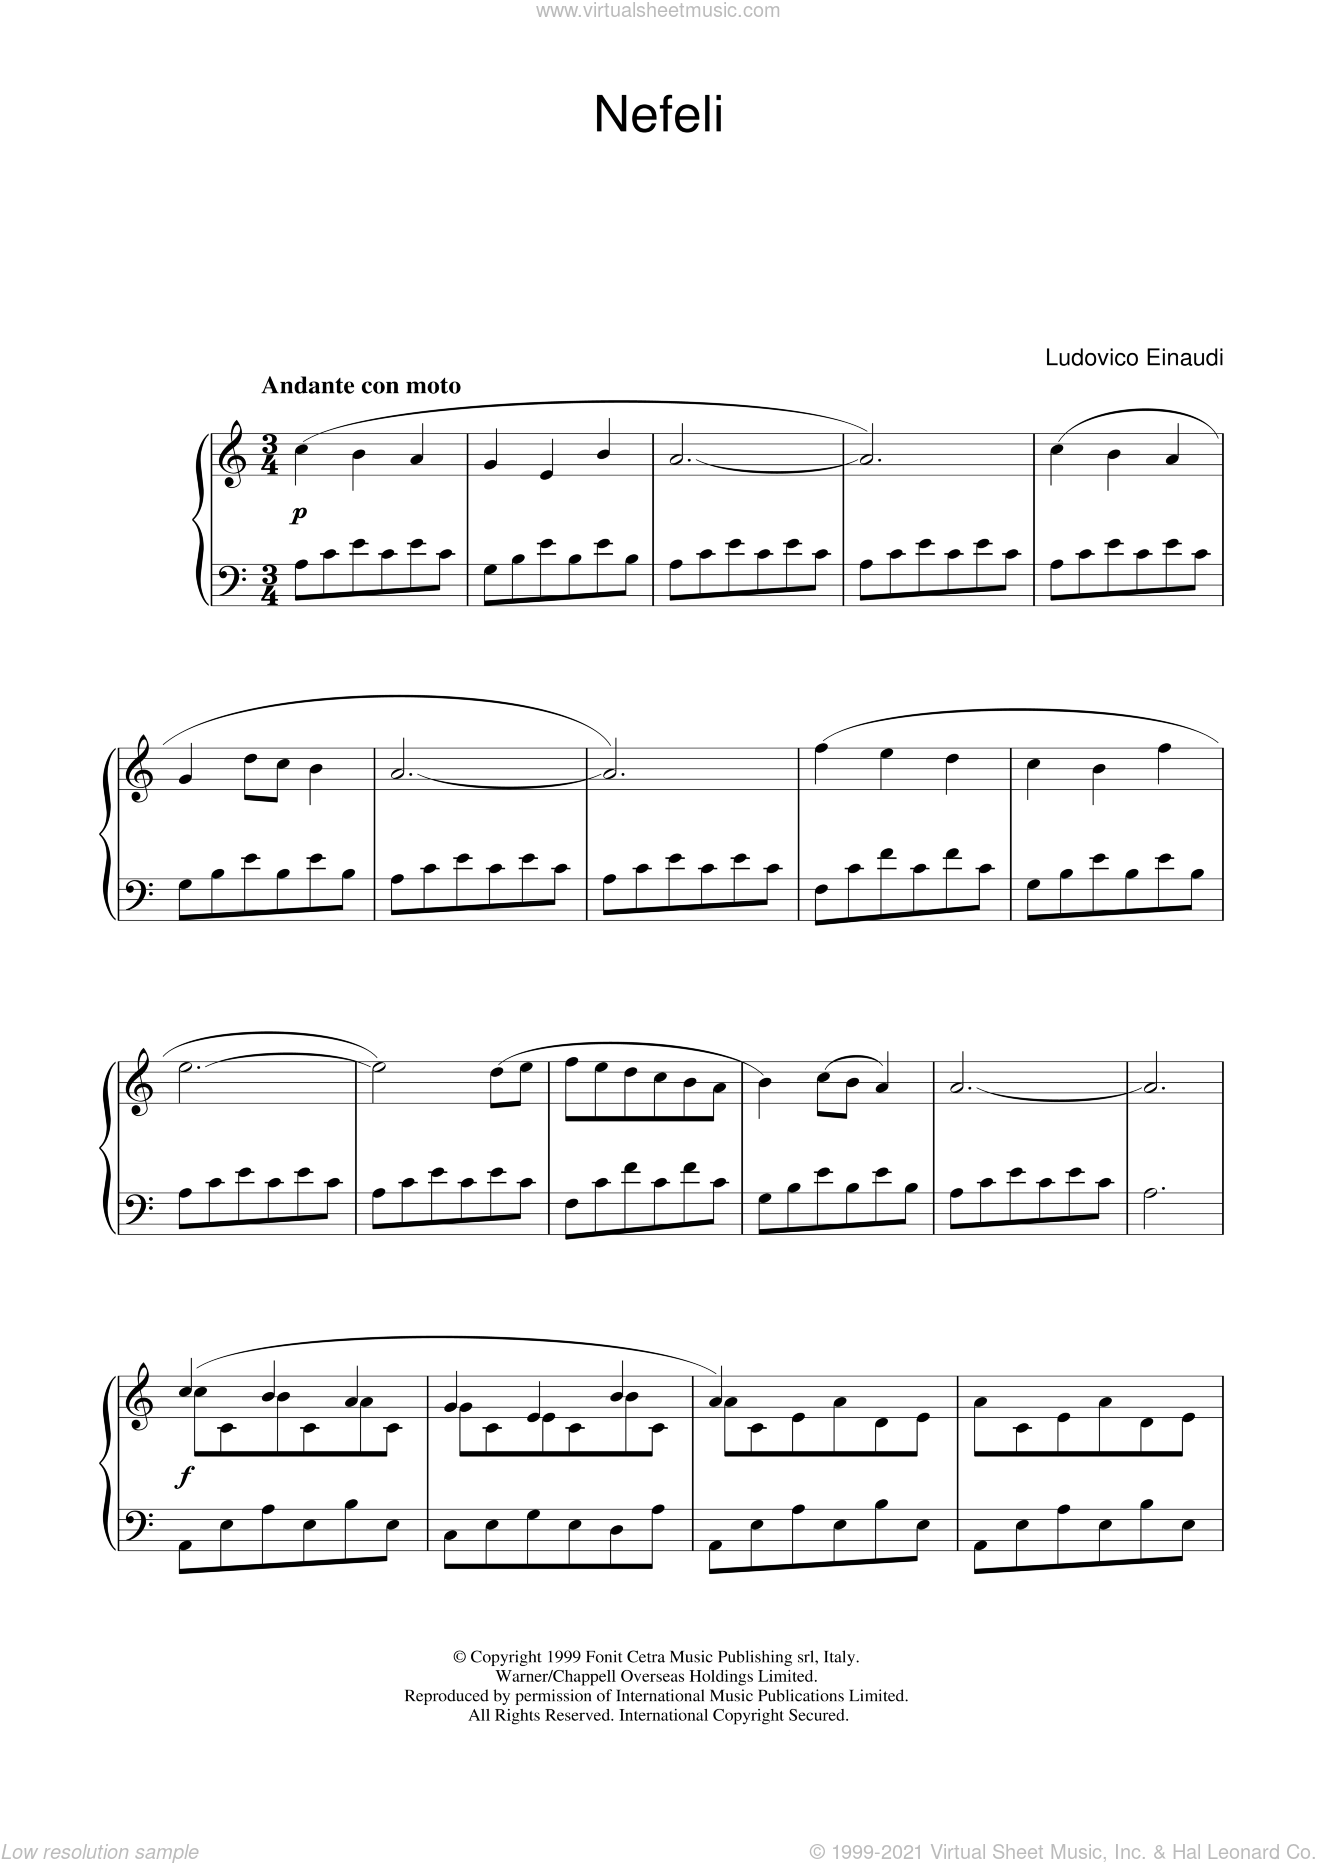 Nefeli sheet music for piano solo by Ludovico Einaudi, classical score, intermediate skill level